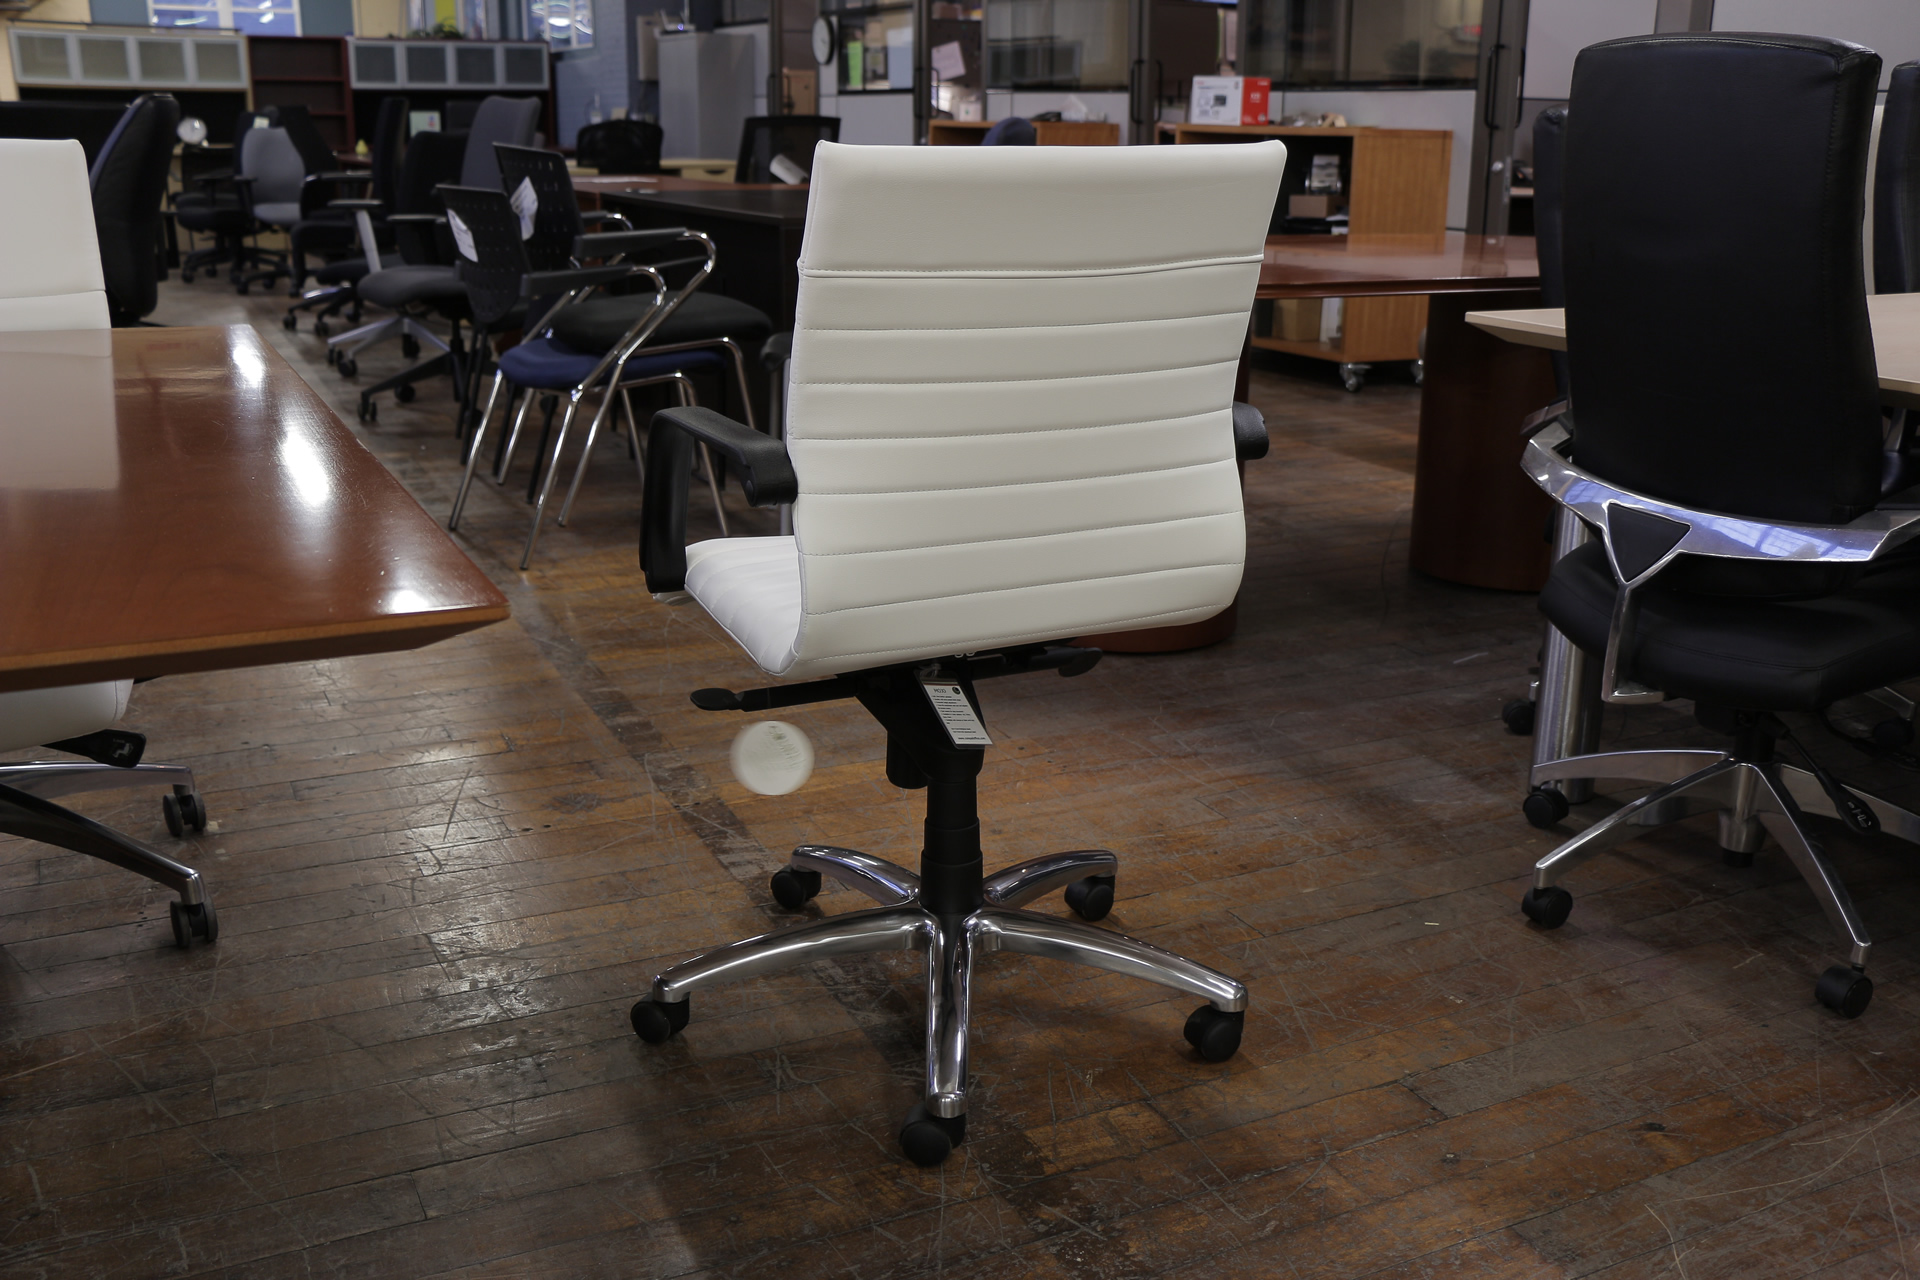 peartreeofficefurniture_peartreeofficefurniture_peartreeofficefurniture_img_9579.jpg